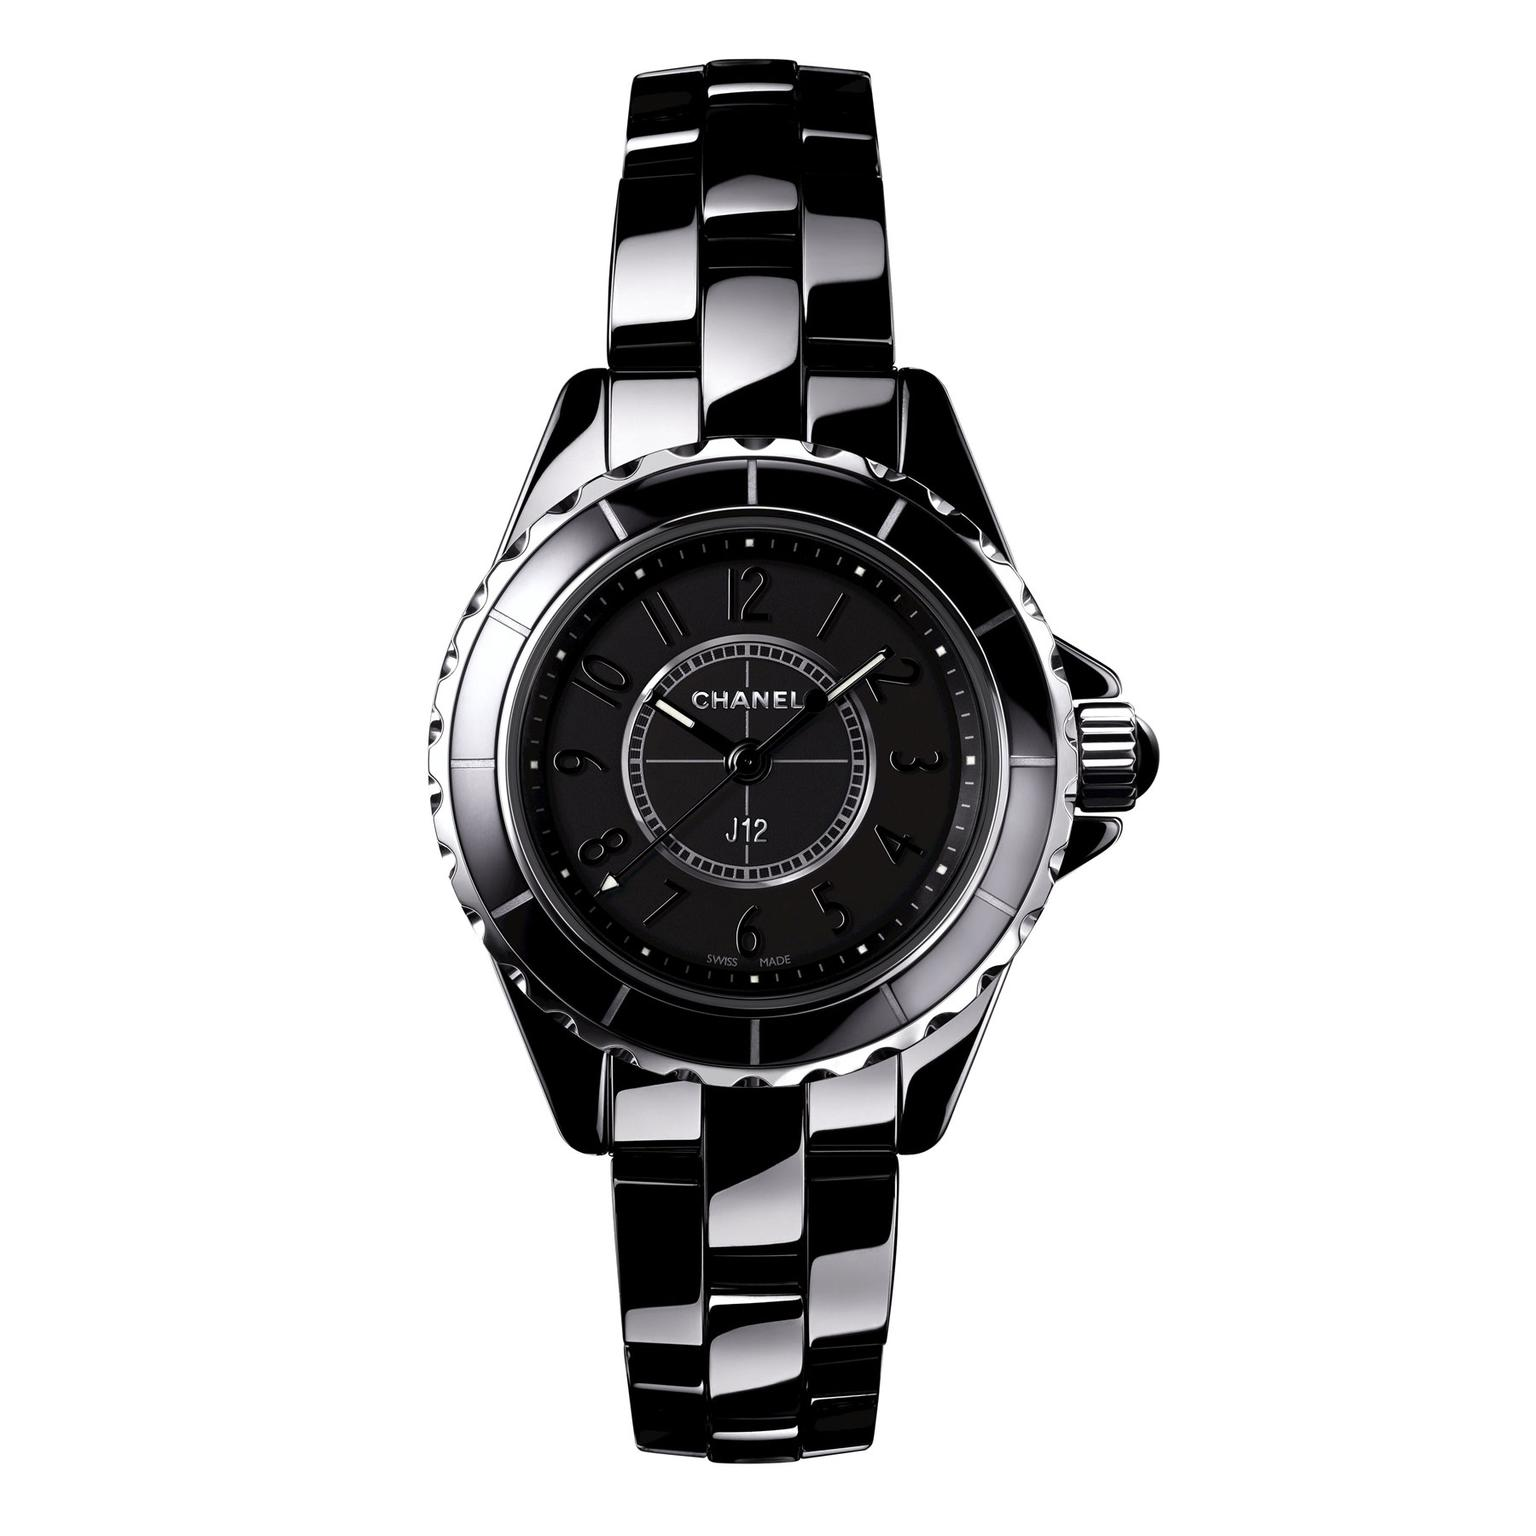 Chanel J12 Intense Black watch